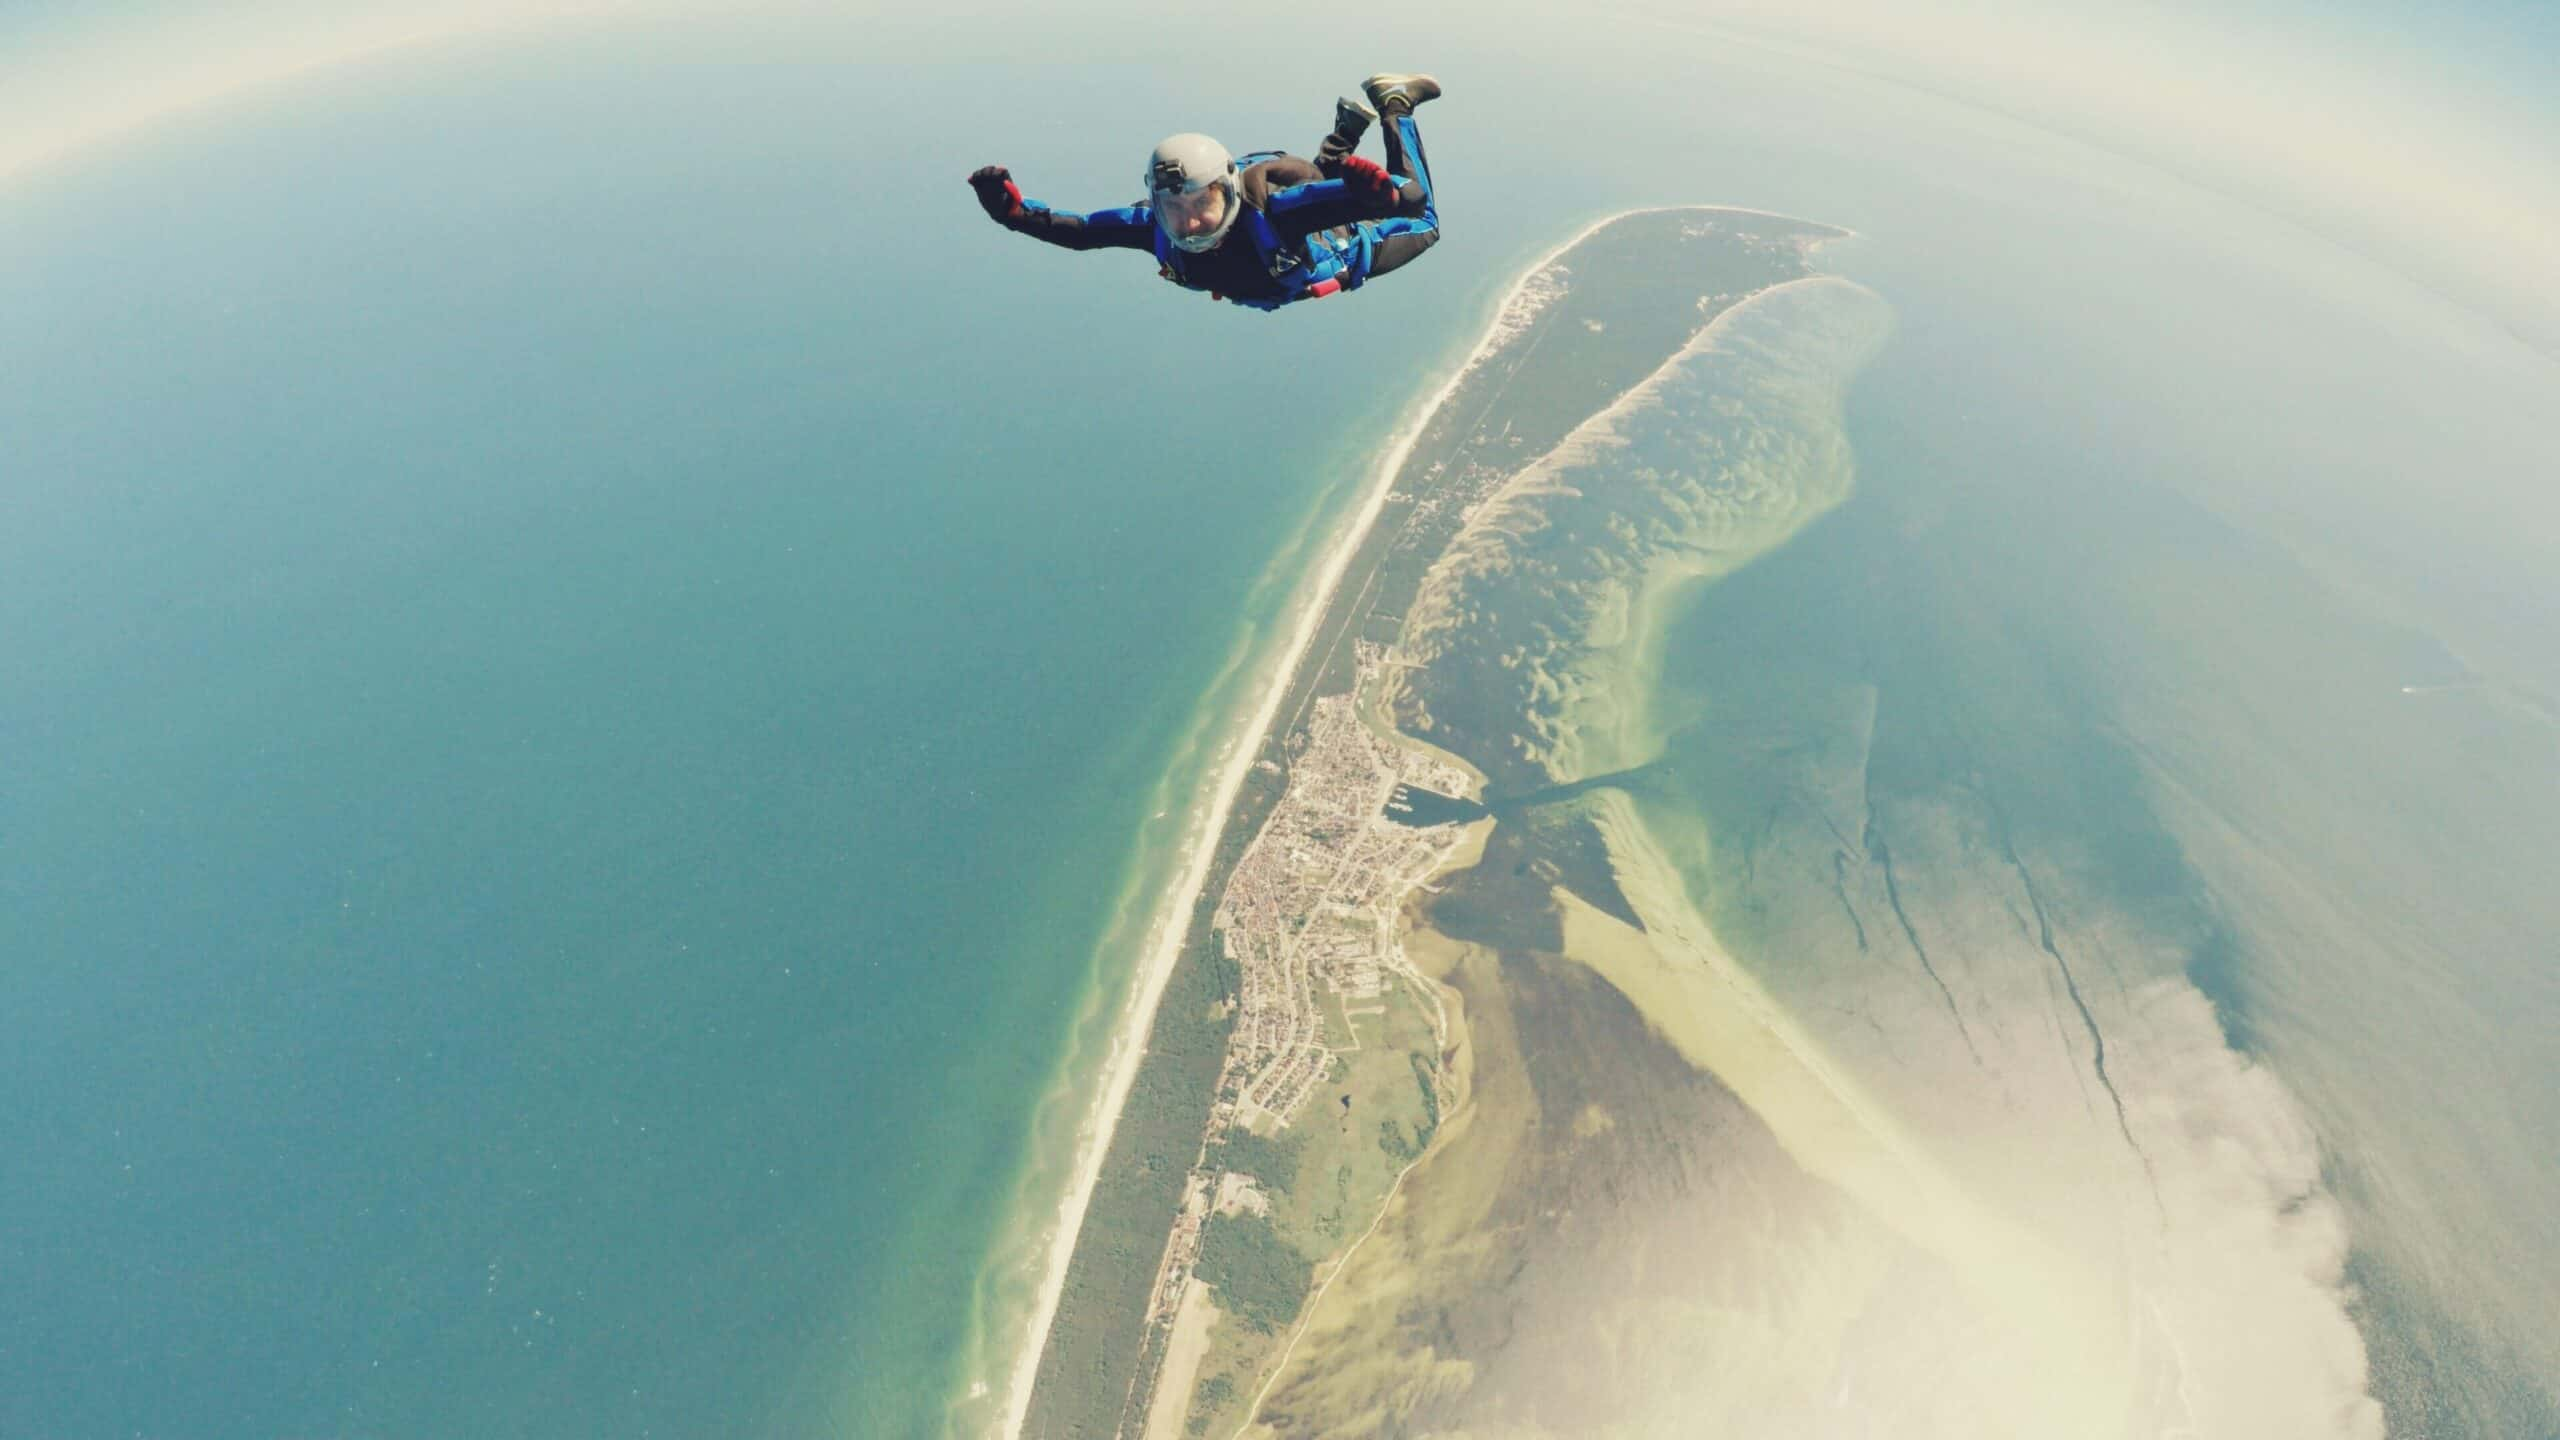 Digital marketing for Skydiving companies